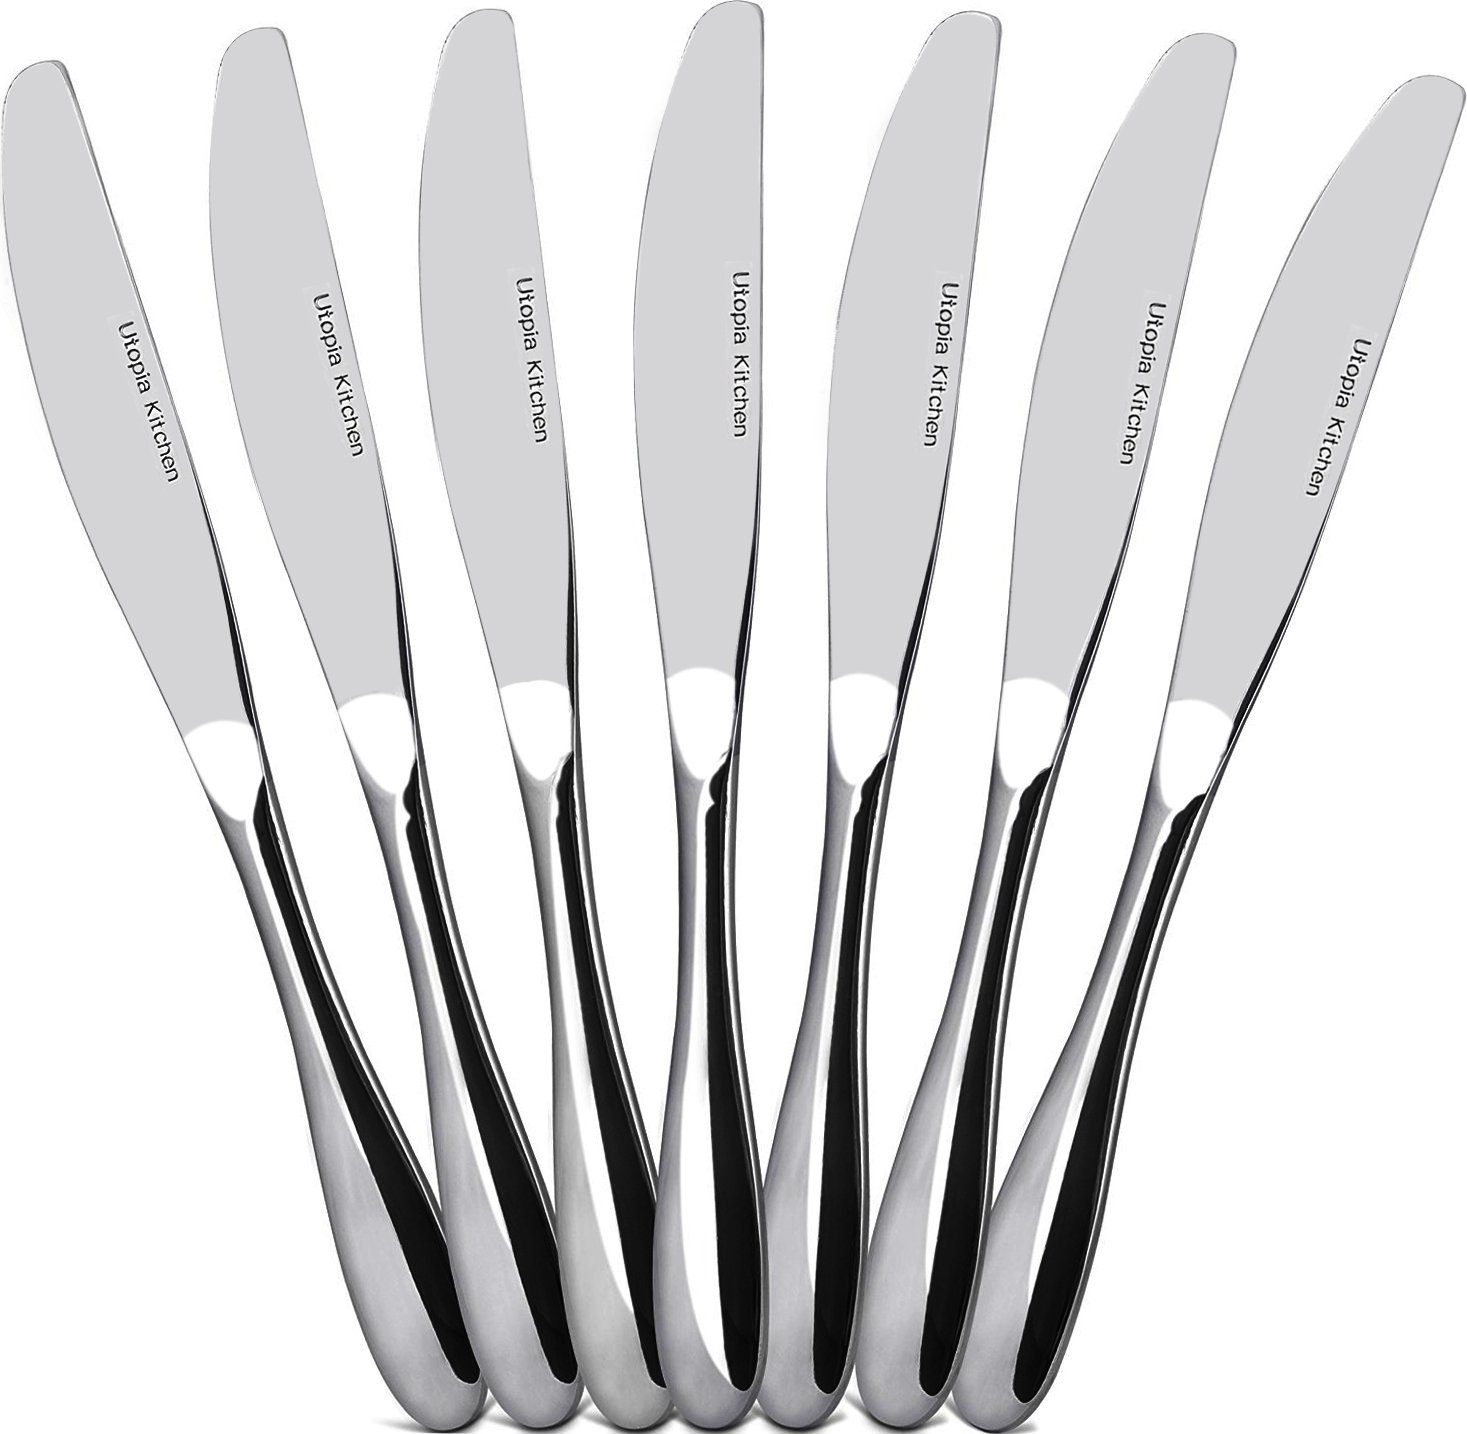 Utopia Kitchen Dinner Knives - Flatware Set Stainless Steel Dinner Knives (1) UK0003